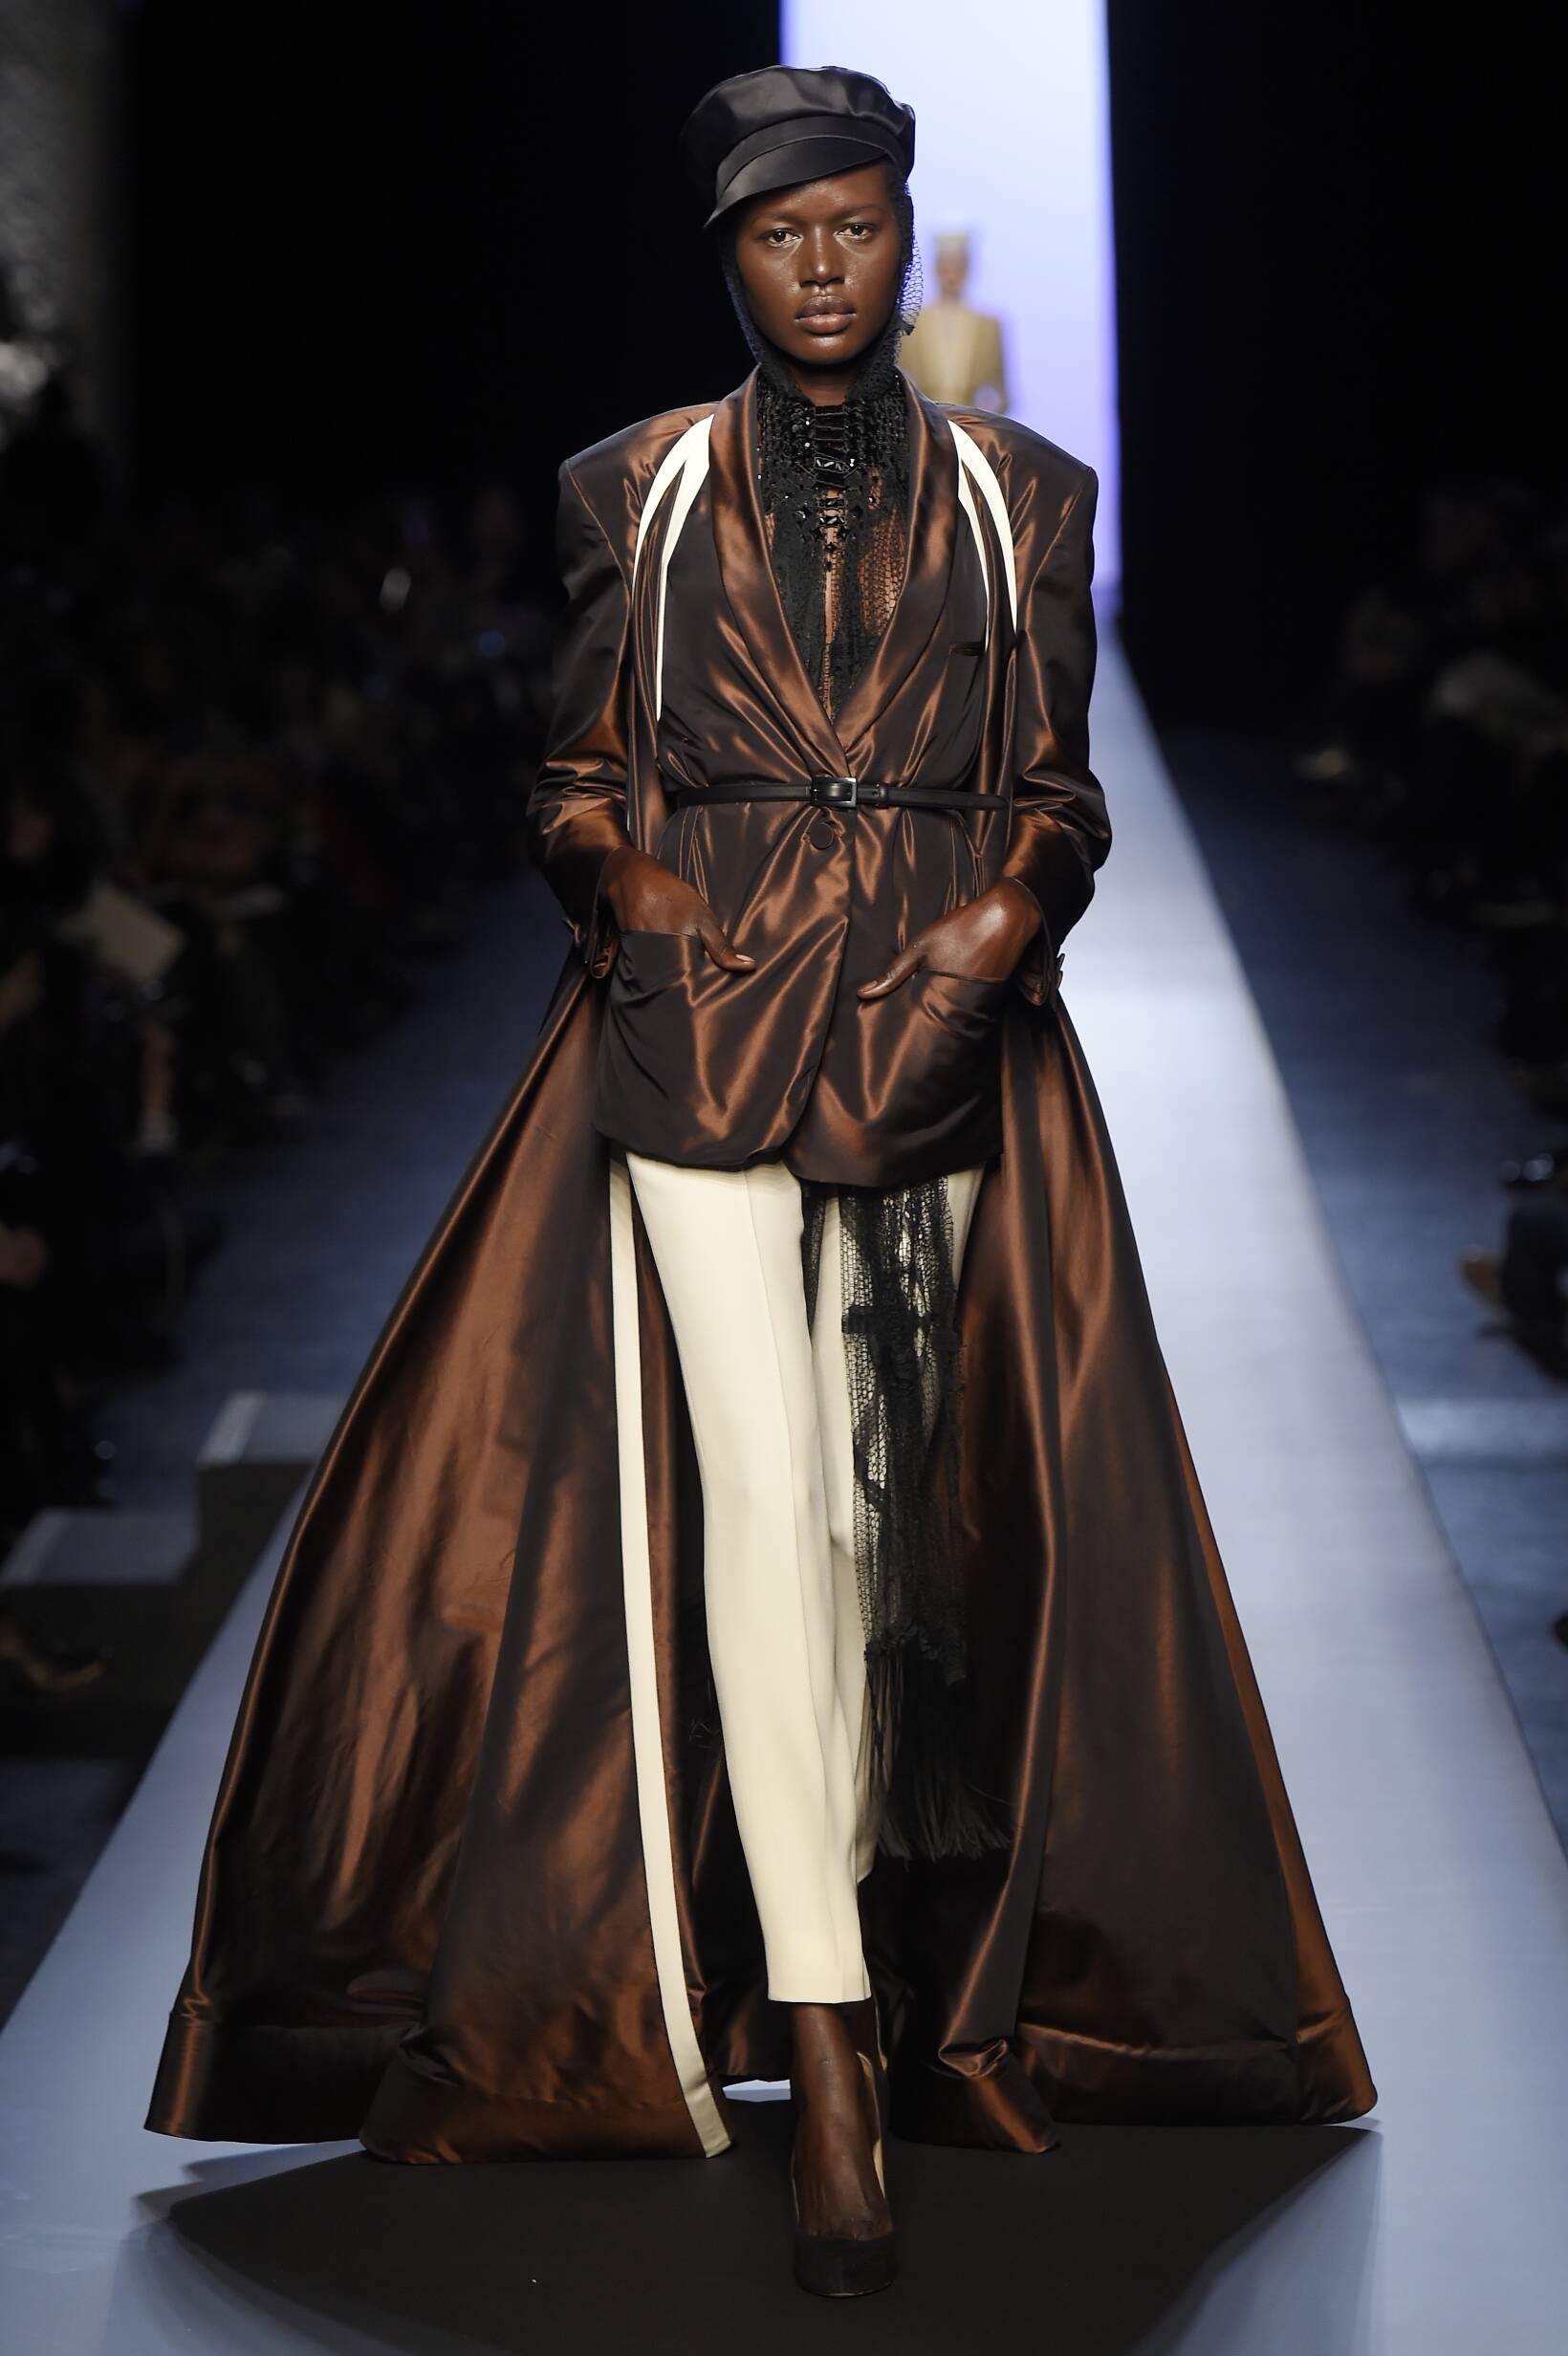 Catwalk Jean Paul Gaultier Haute Couture Womenswear Collection Summer 2015